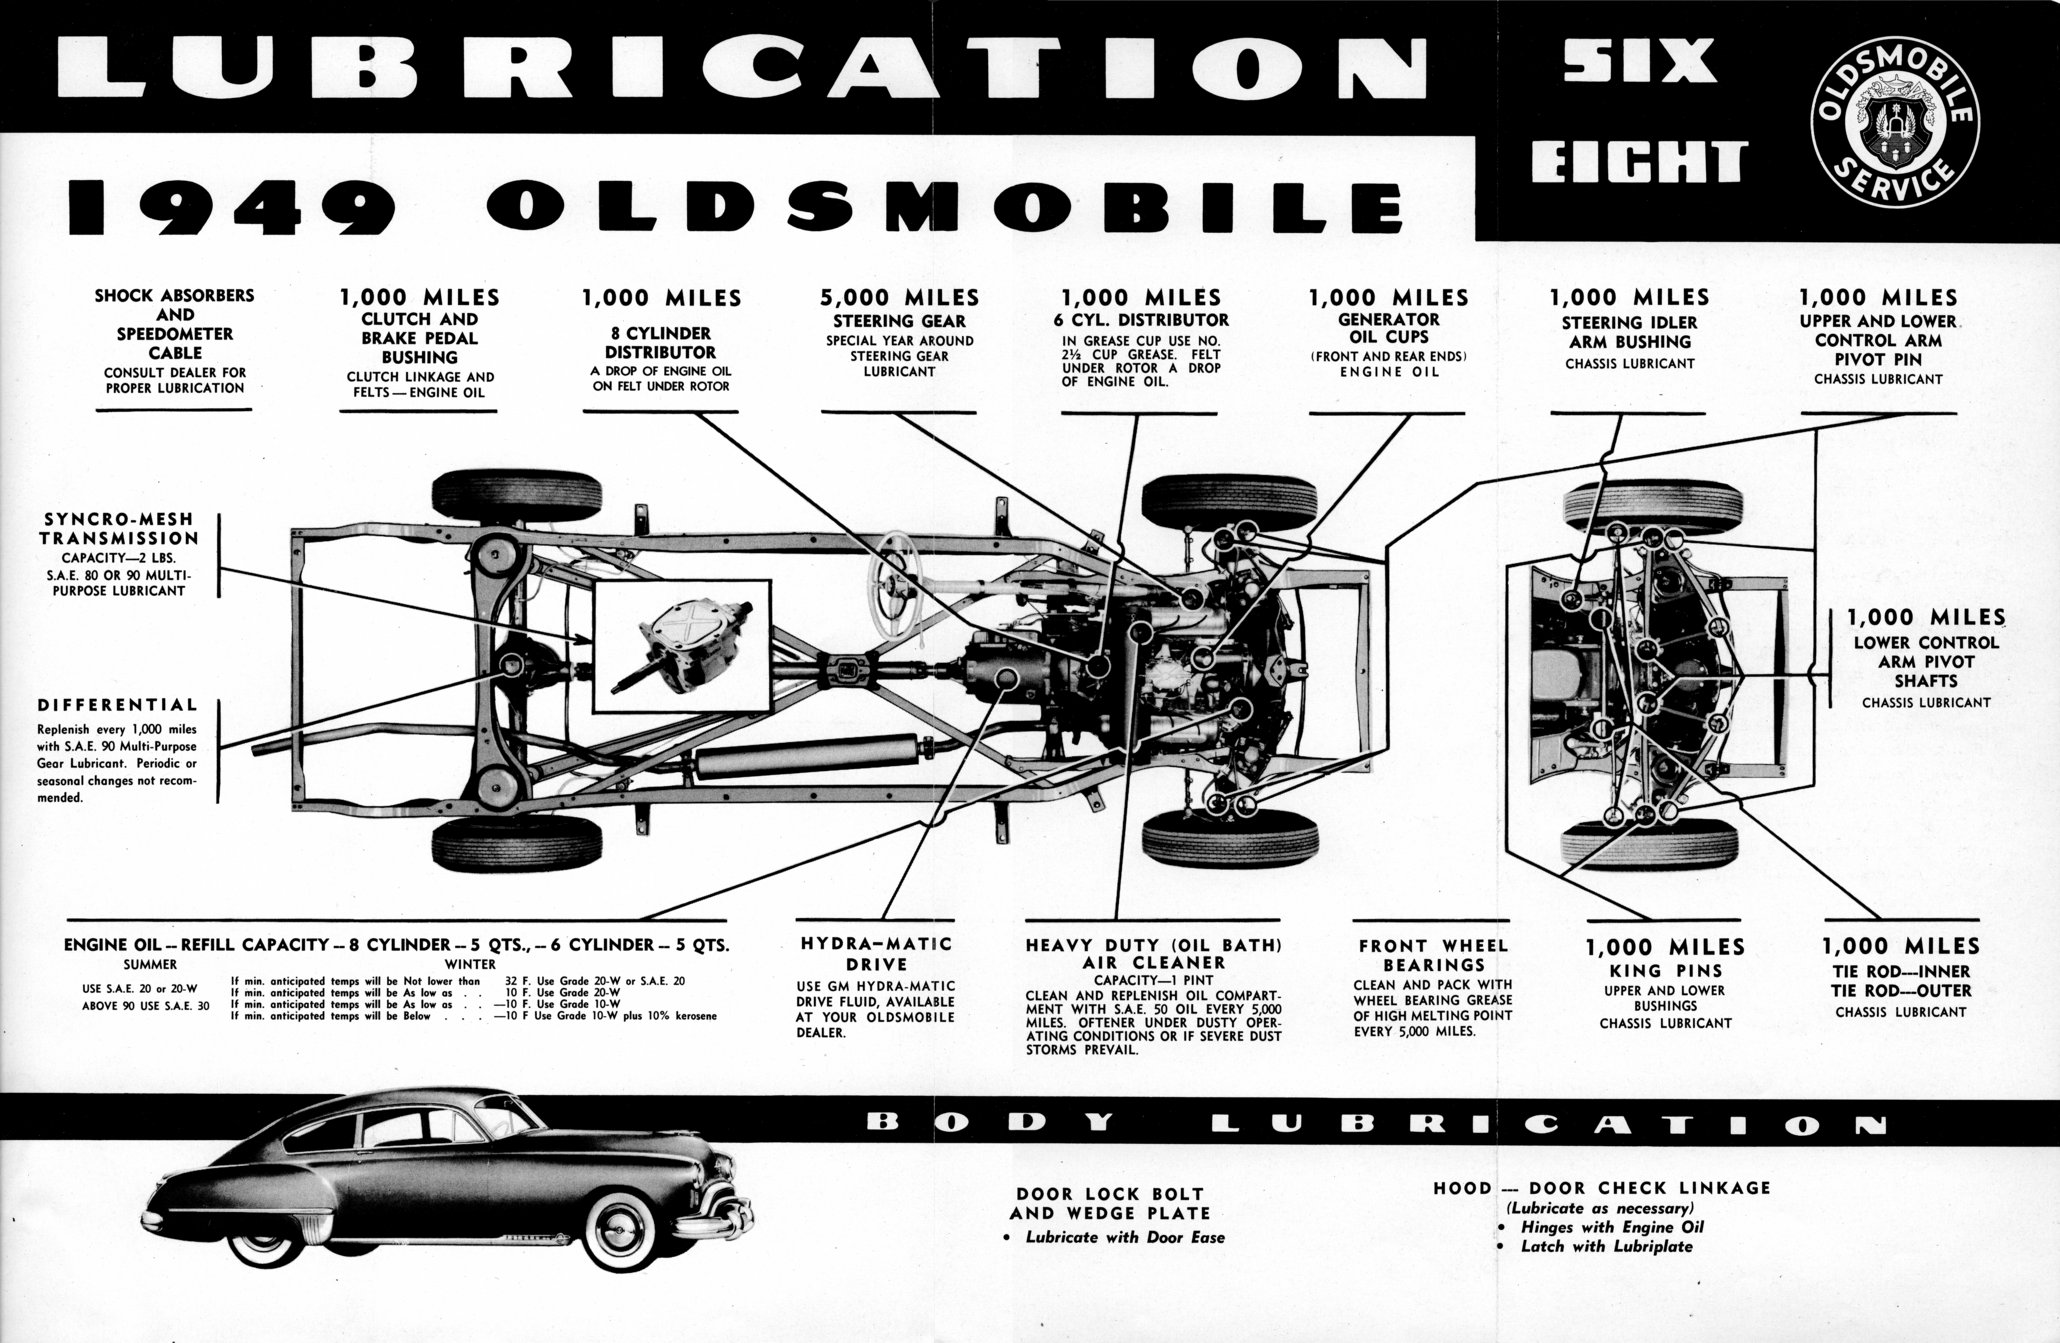 1949 Oldsmobile Shop Manual 6 And 8 88 Wiring Diagram Diagrams The Old Lubrication Chart